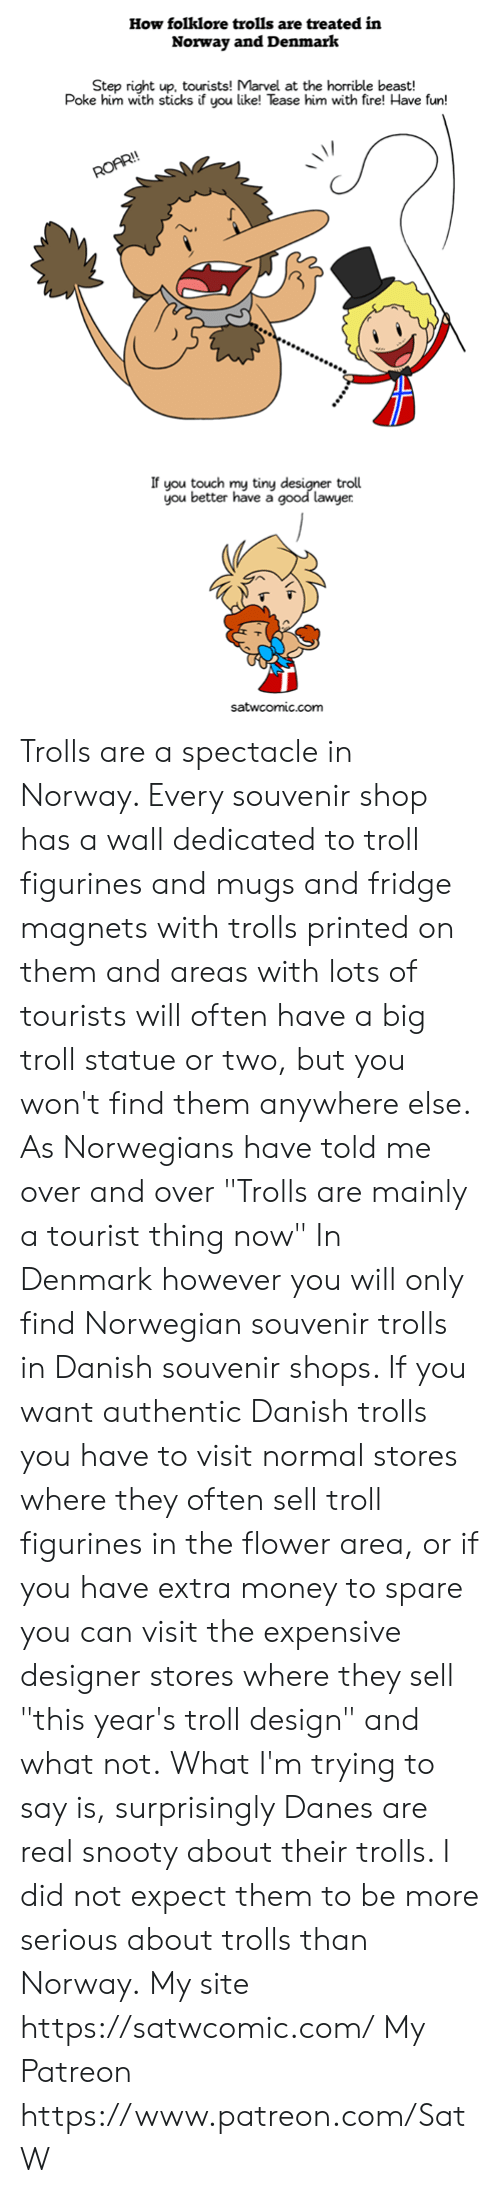 "Norwegian: How folklore trolls are treated in  Norway and Denmark  Step right up, tourists! Marvel at the horrible beast!  Poke him with sticks if you like! Tease him with fire! Have fun!  If you touch my tinyd  you better have a  troll  good lawyer  satwcomic.com Trolls are a spectacle in Norway. Every souvenir shop has a wall dedicated to troll figurines and mugs and fridge magnets with trolls printed on them and areas with lots of tourists will often have a big troll statue or two, but you won't find them anywhere else. As Norwegians have told me over and over ""Trolls are mainly a tourist thing now""  In Denmark however you will only find Norwegian souvenir trolls in Danish souvenir shops. If you want authentic Danish trolls you have to visit normal stores where they often sell troll figurines in the flower area, or if you have extra money to spare you can visit the expensive designer stores where they sell ""this year's troll design"" and what not.  What I'm trying to say is, surprisingly Danes are real snooty about their trolls. I did not expect them to be more serious about trolls than Norway.  My site https://satwcomic.com/ My Patreon https://www.patreon.com/SatW"